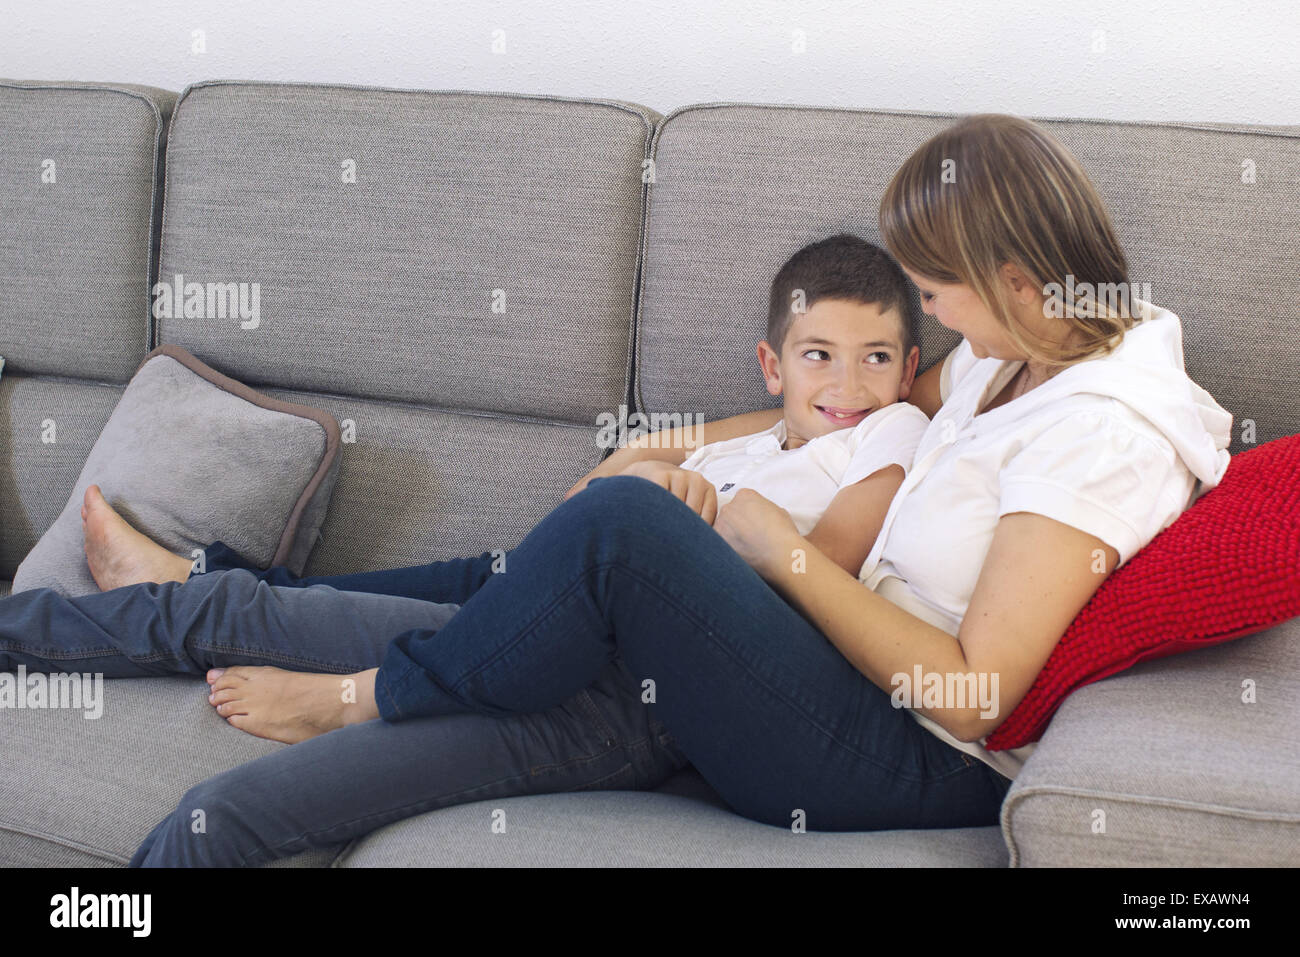 Mother and son relaxing together on sofa - Stock Image